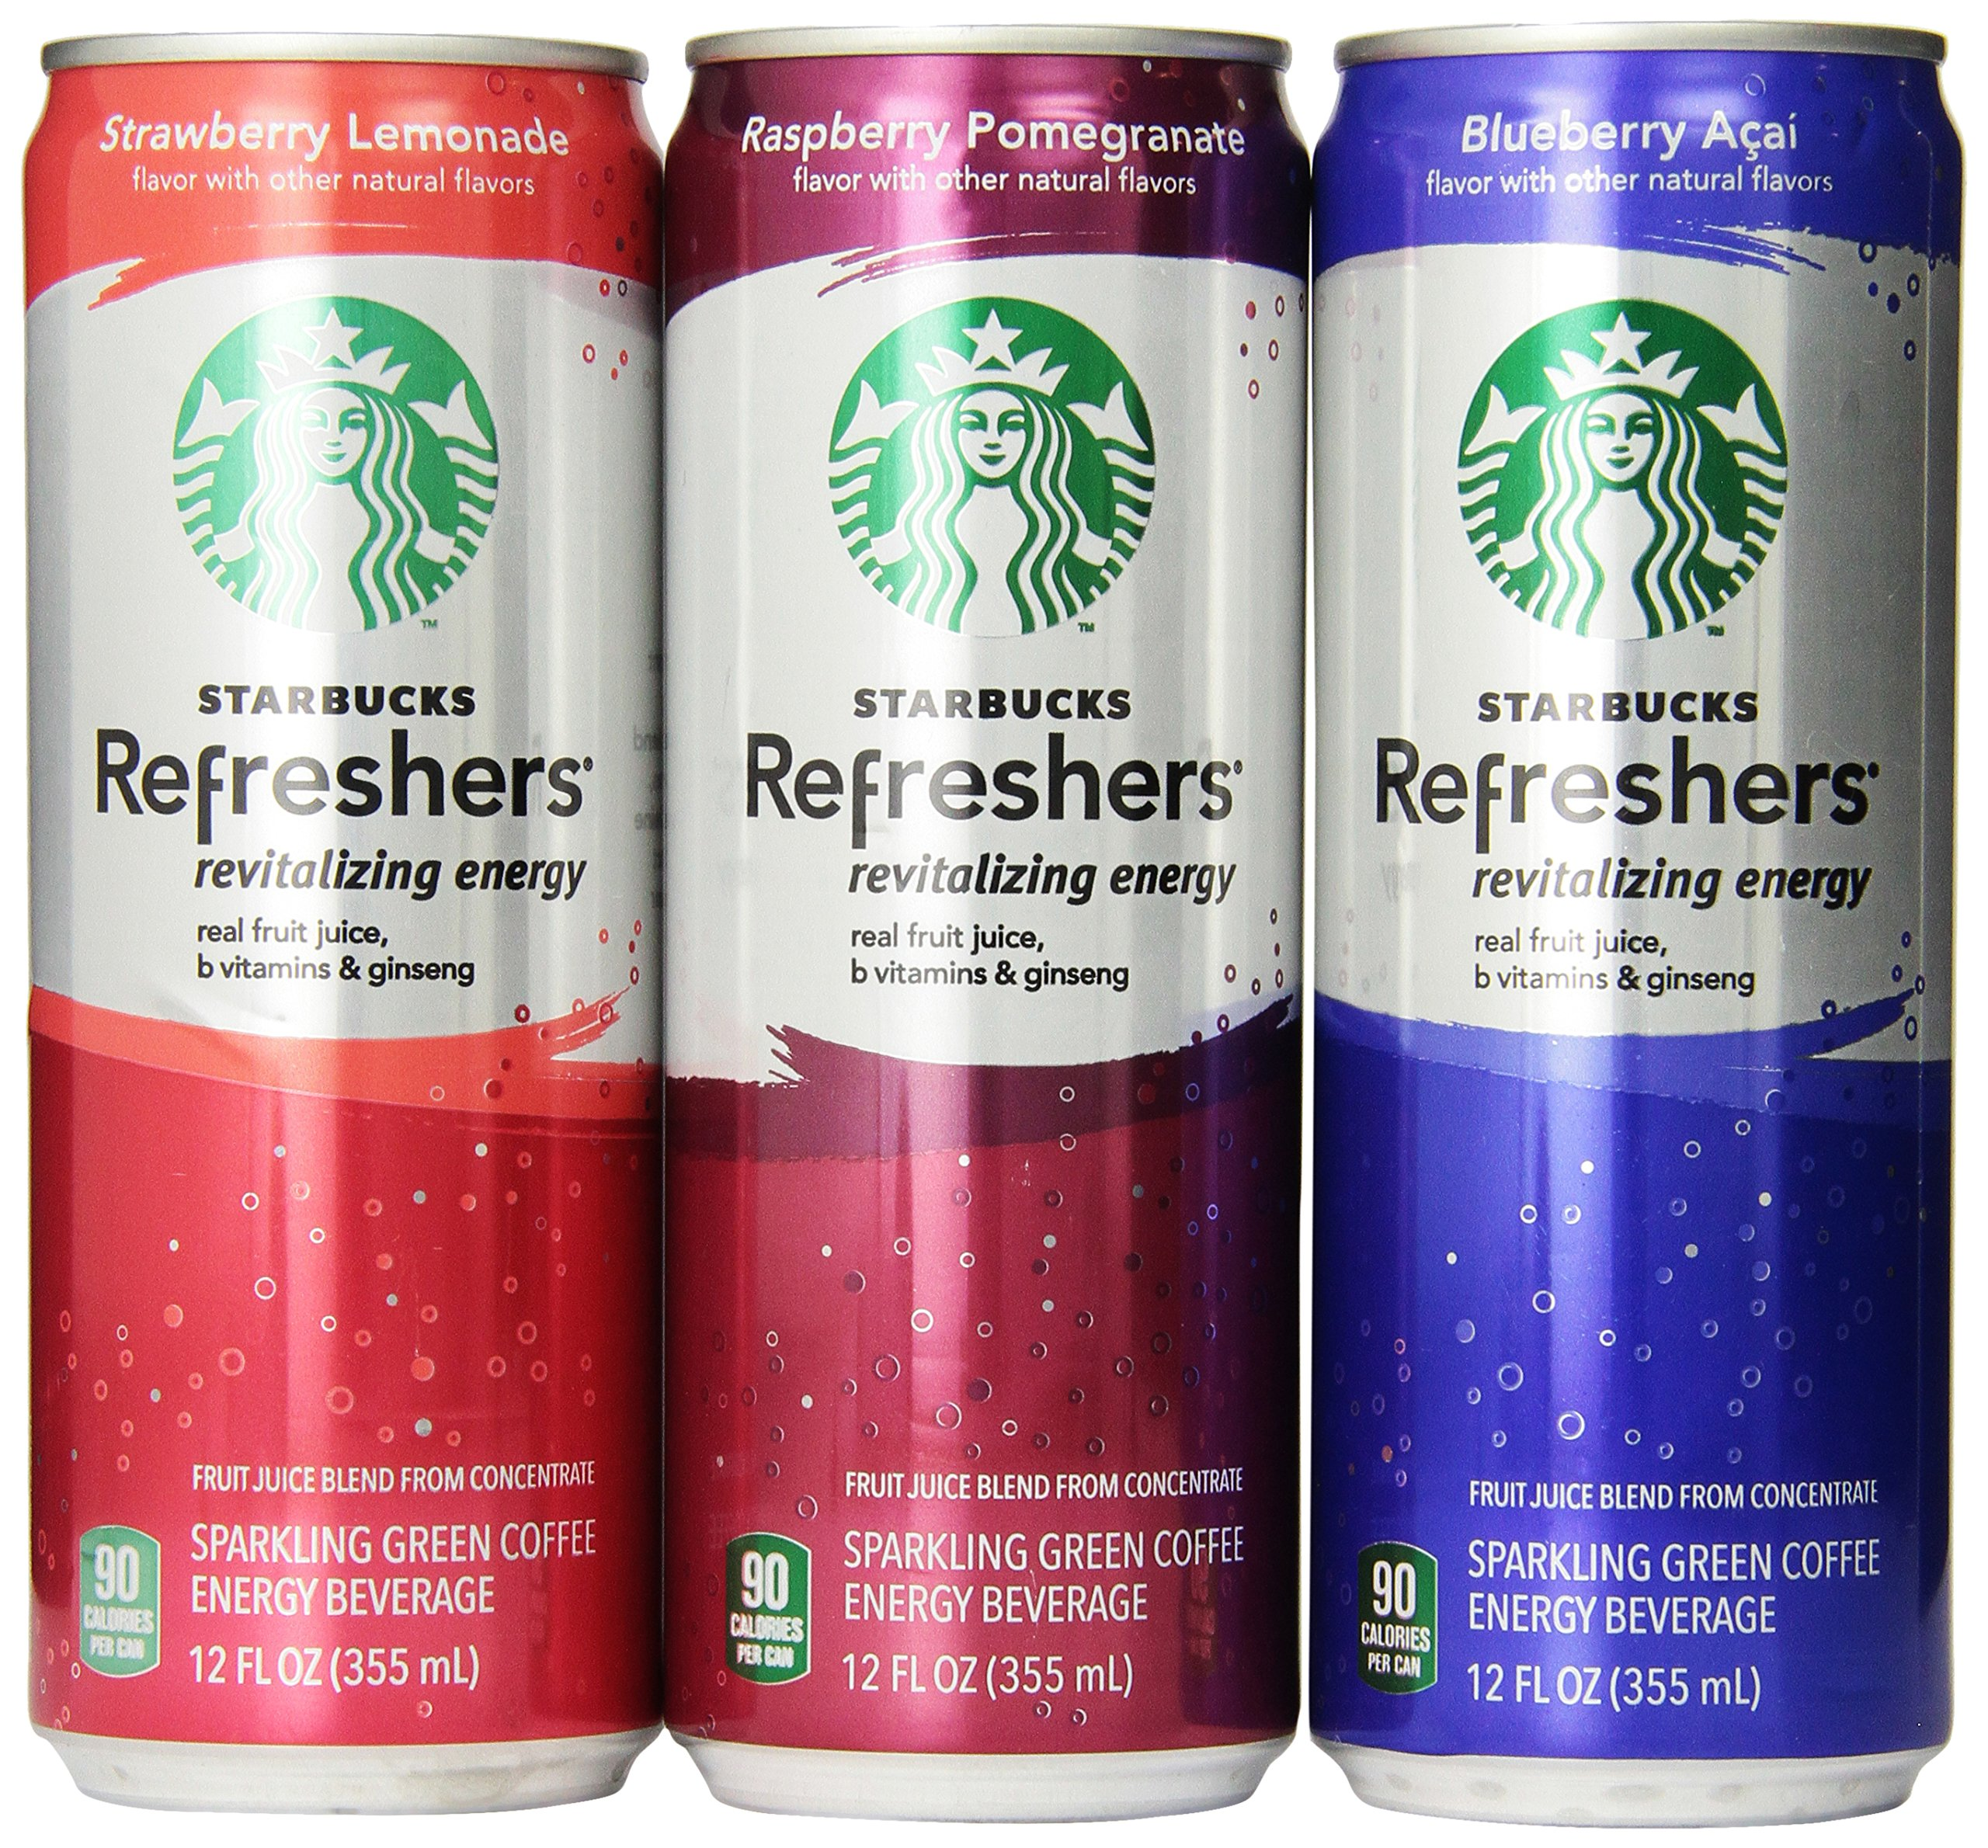 Starbucks Refreshers, 3 Flavor Variety Pack, 12 Ounce Slim Cans, 12 Pack by Starbucks (Image #7)